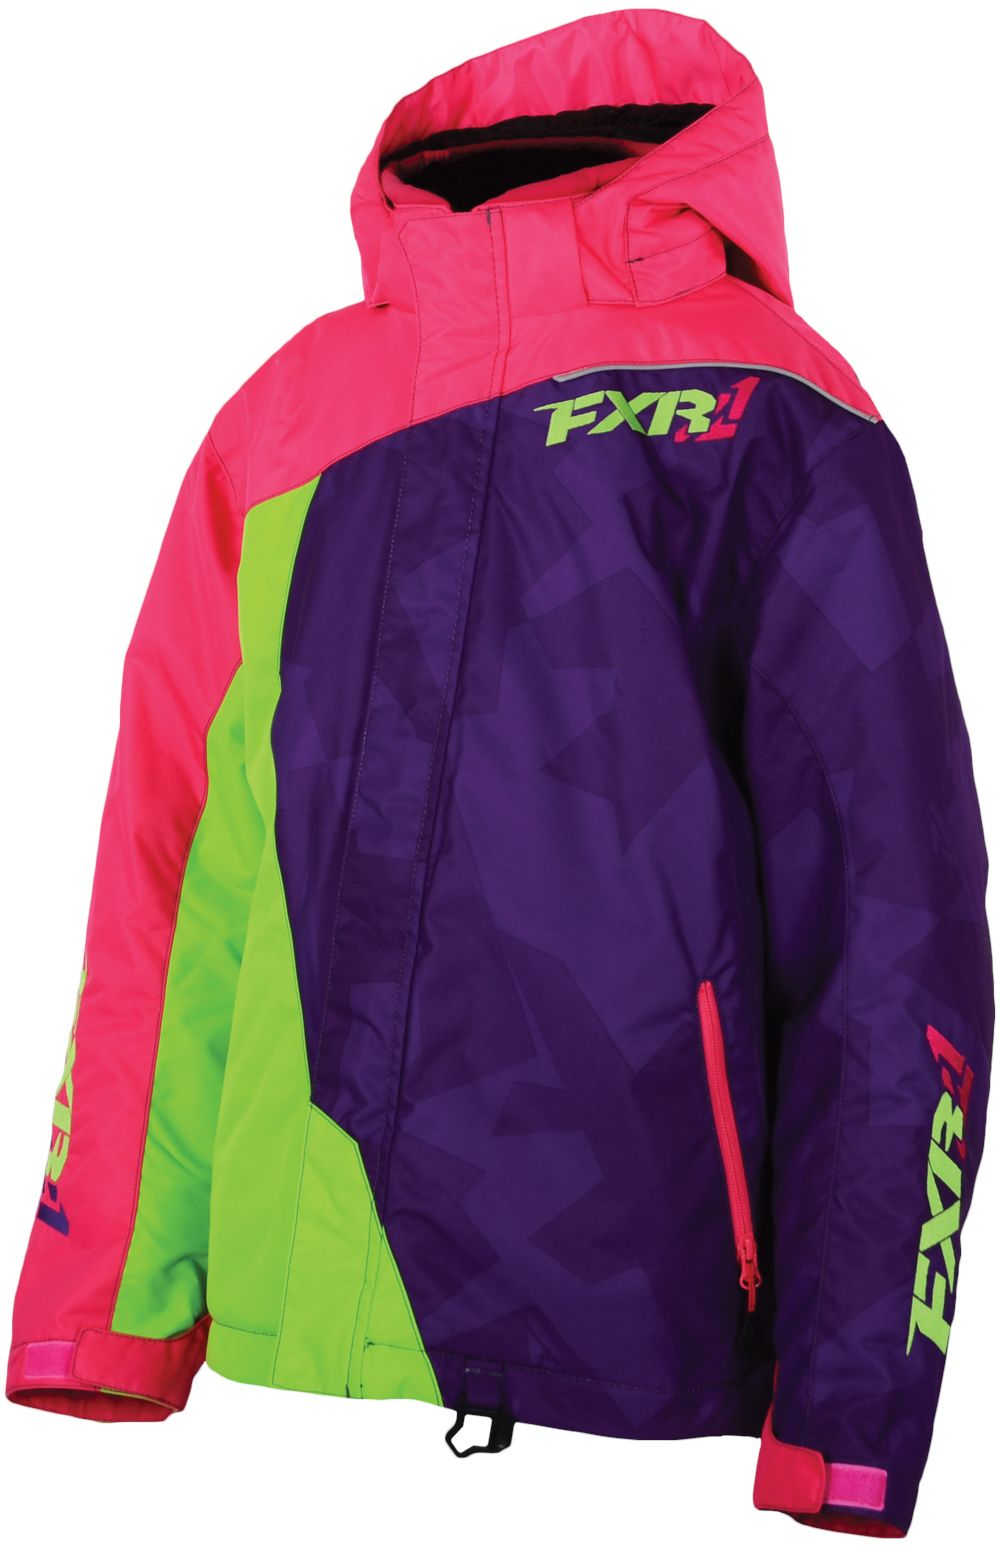 FXR Racing - 2015 Snowmobile Apparel - Child/Youth Vertical Jacket…